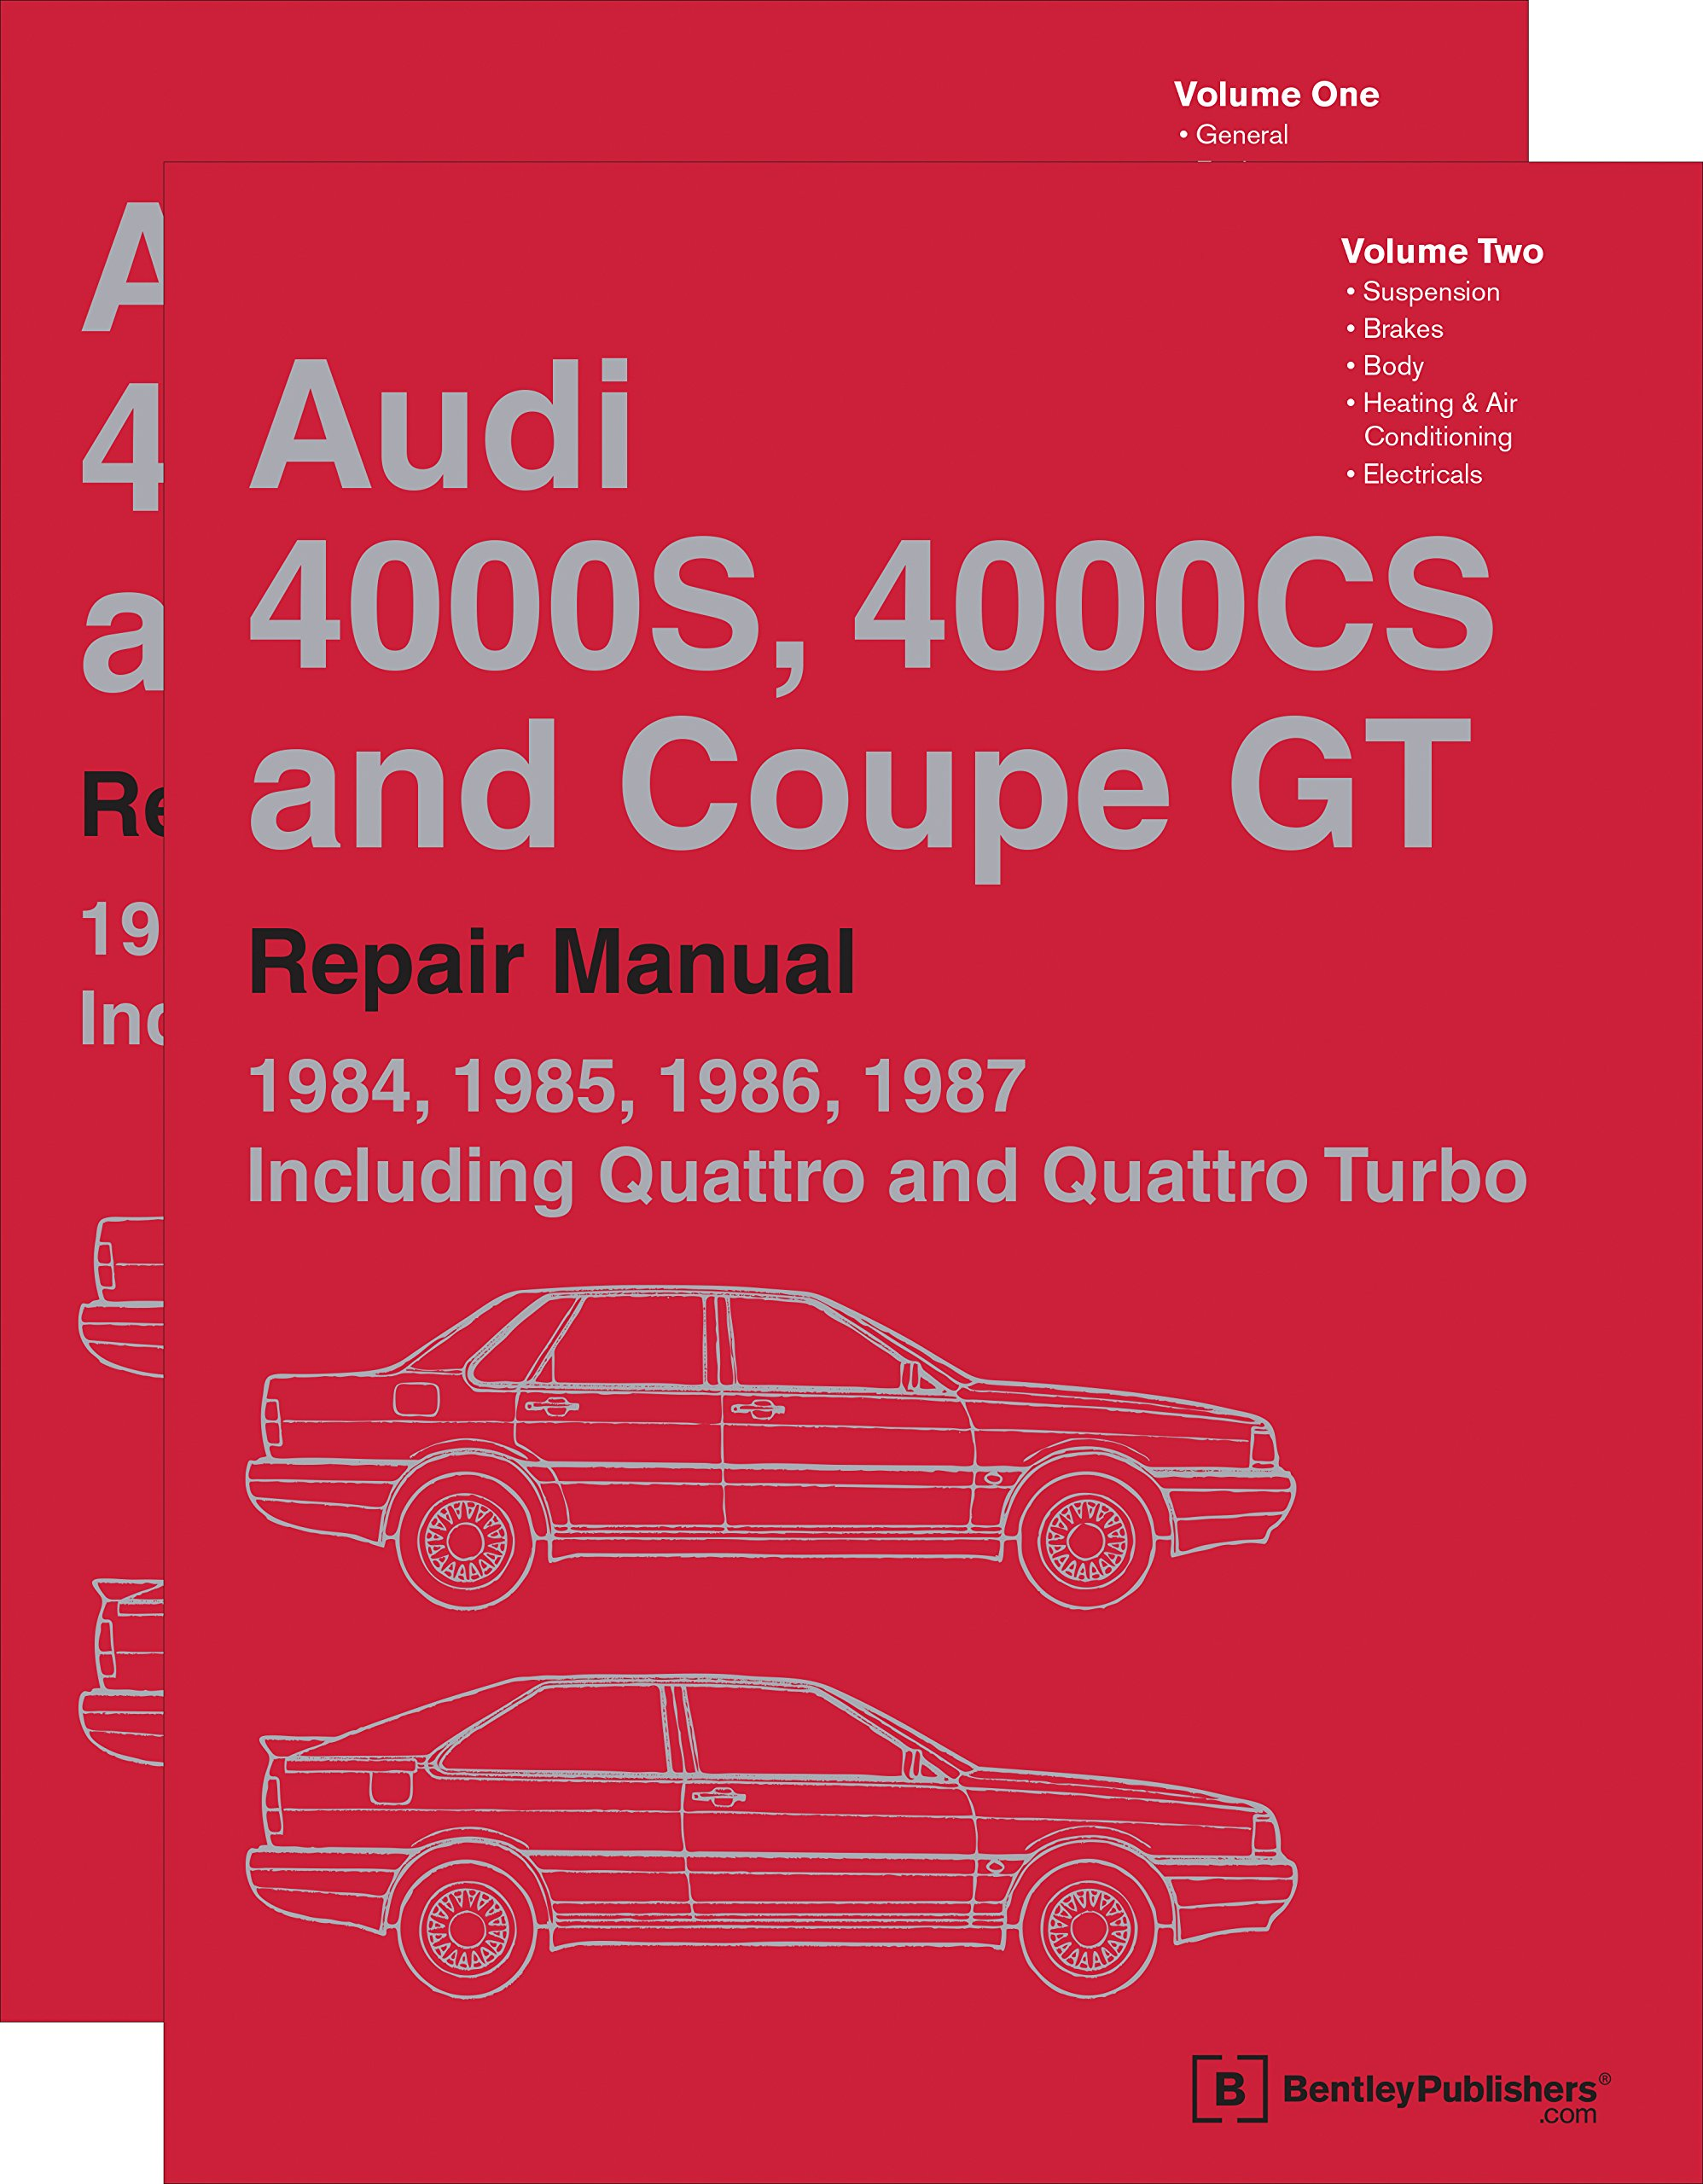 Audi 4000s, 4000cs and Coupe GT B2 Repair Manual: 1984, 1985, 1986, 1987: Including Quattro and Quattro Turbo: Amazon.es: Audi of America: Libros en idiomas ...